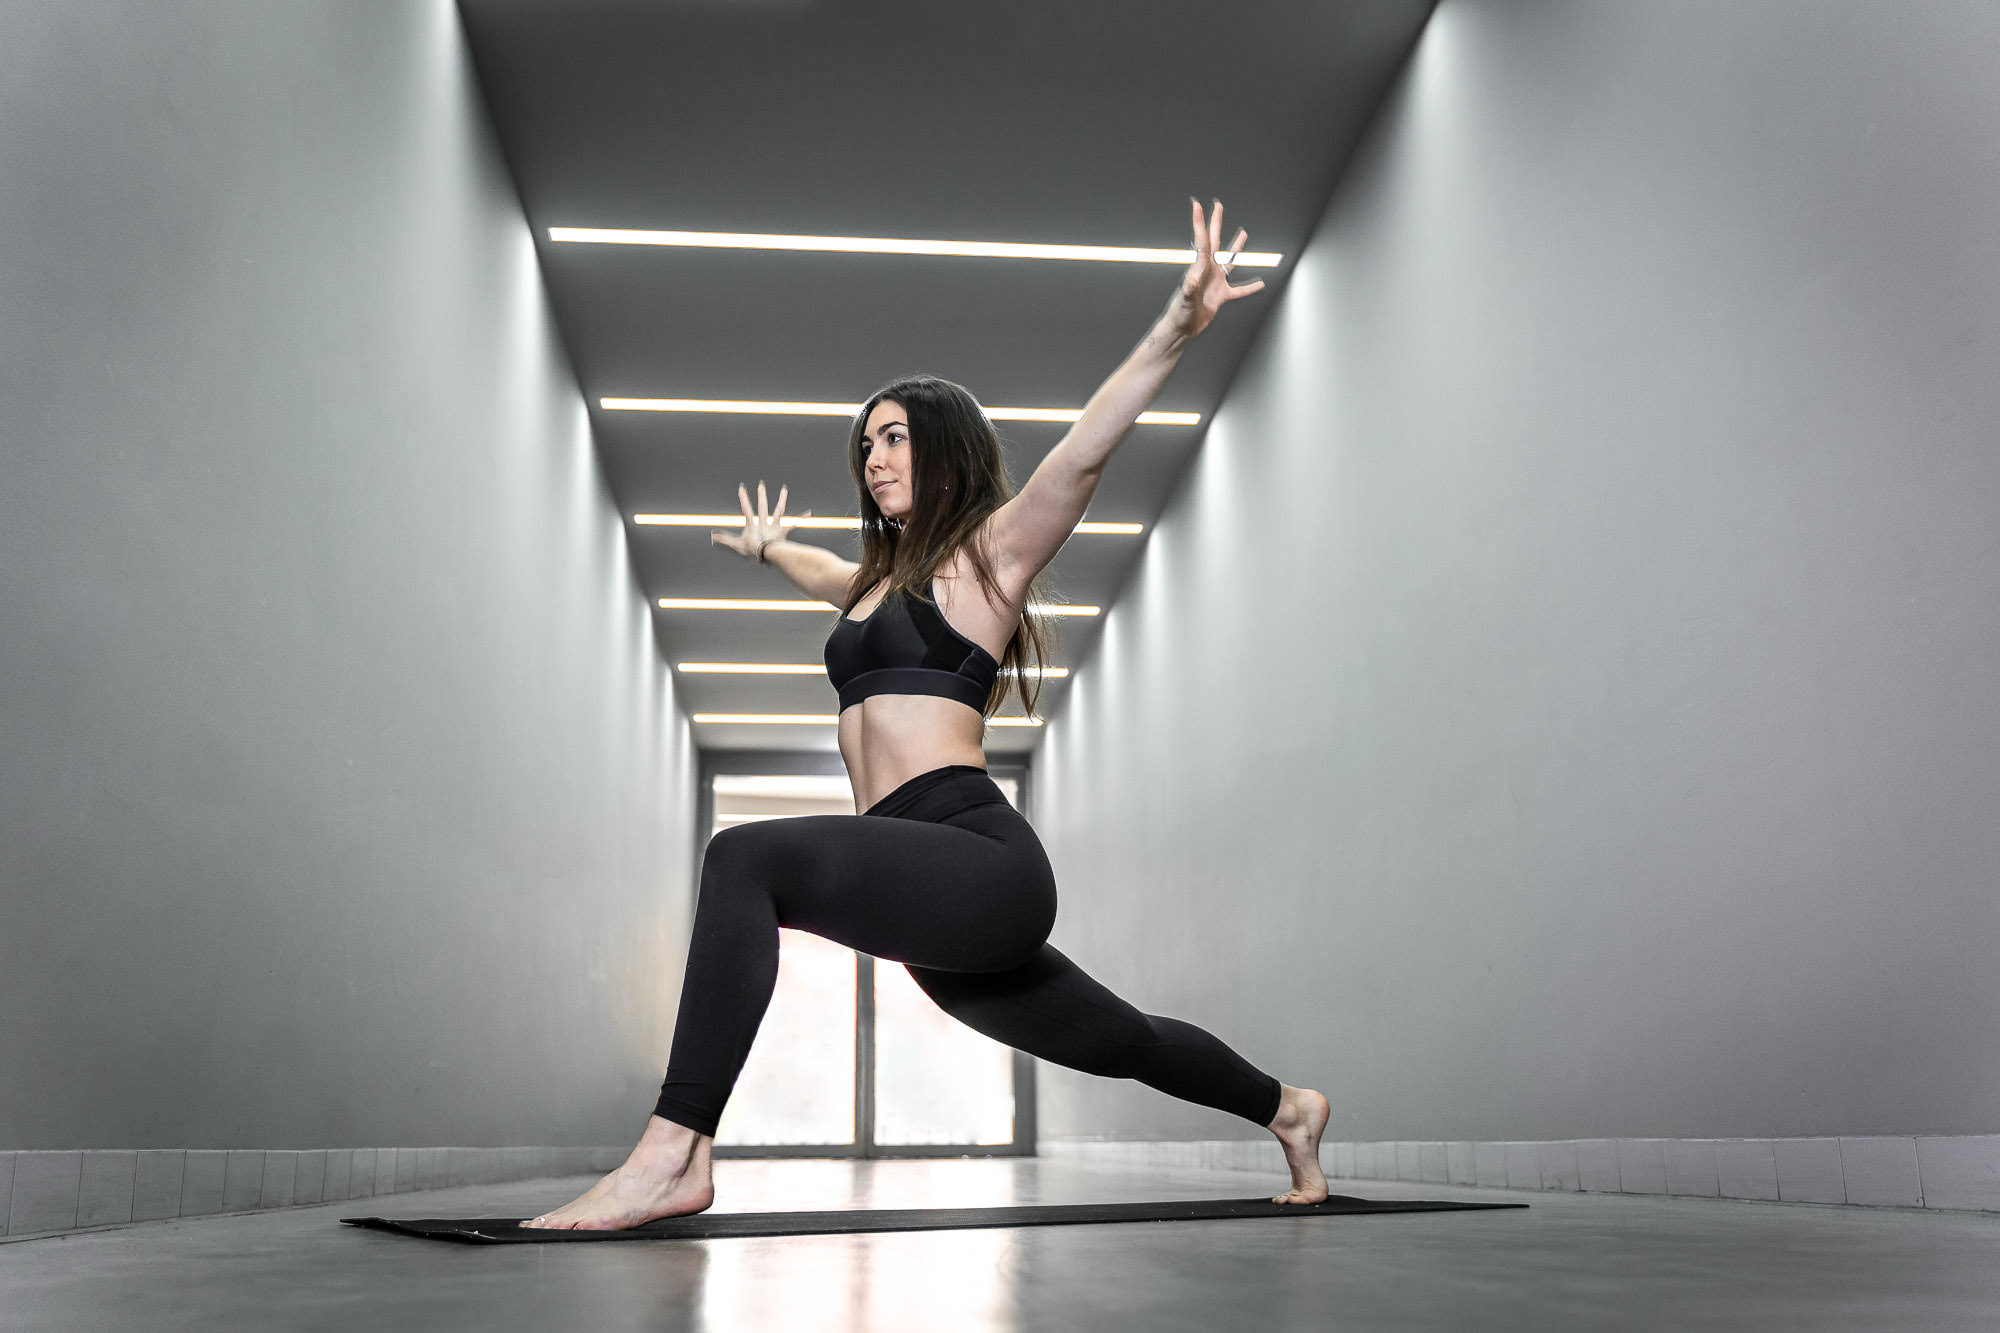 2019-04-24- YOGA Nico Sarani-064A7303250-Edit.jpg